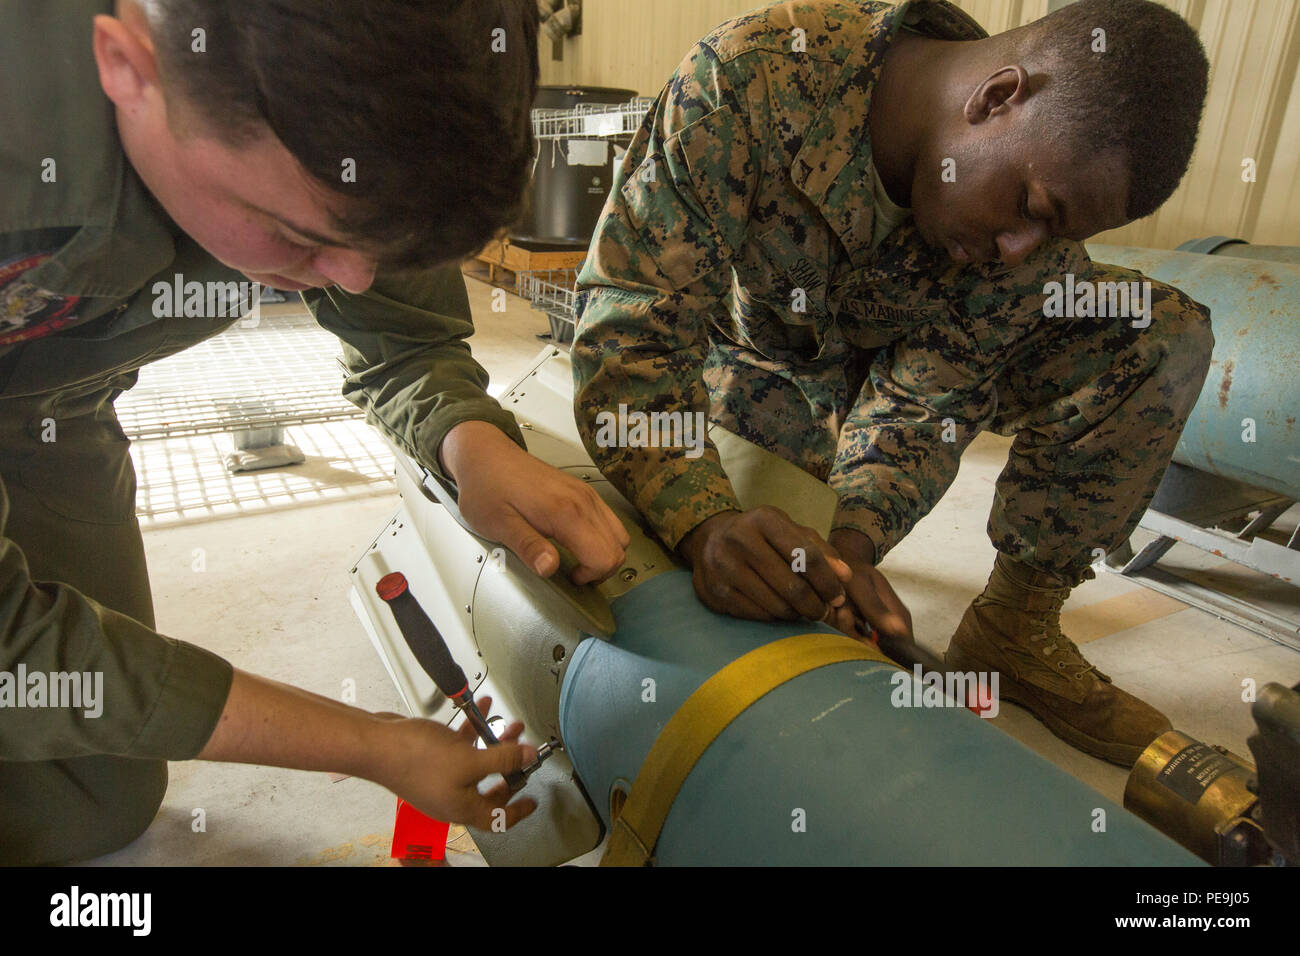 U.S. Marine Corps Lance Cpl. William H. Shaw, left, and Lance Cpl. Michaelalan Mills, aviation ordnance systems technicians assigned to Marine Aviation Logistics Squadron (MALS) 14, assemble a guided bomb unit on Marine Corps Air Station Cherry Point, N.C., Nov. 18, 2015. MALS-14 provides support to aviation units in 2nd Marine Aircraft Wing by preparing munitions and repairing weapon systems. (U.S. Marine Corps photo by Lance Cpl. Jered T. Stone/Released) - Stock Image